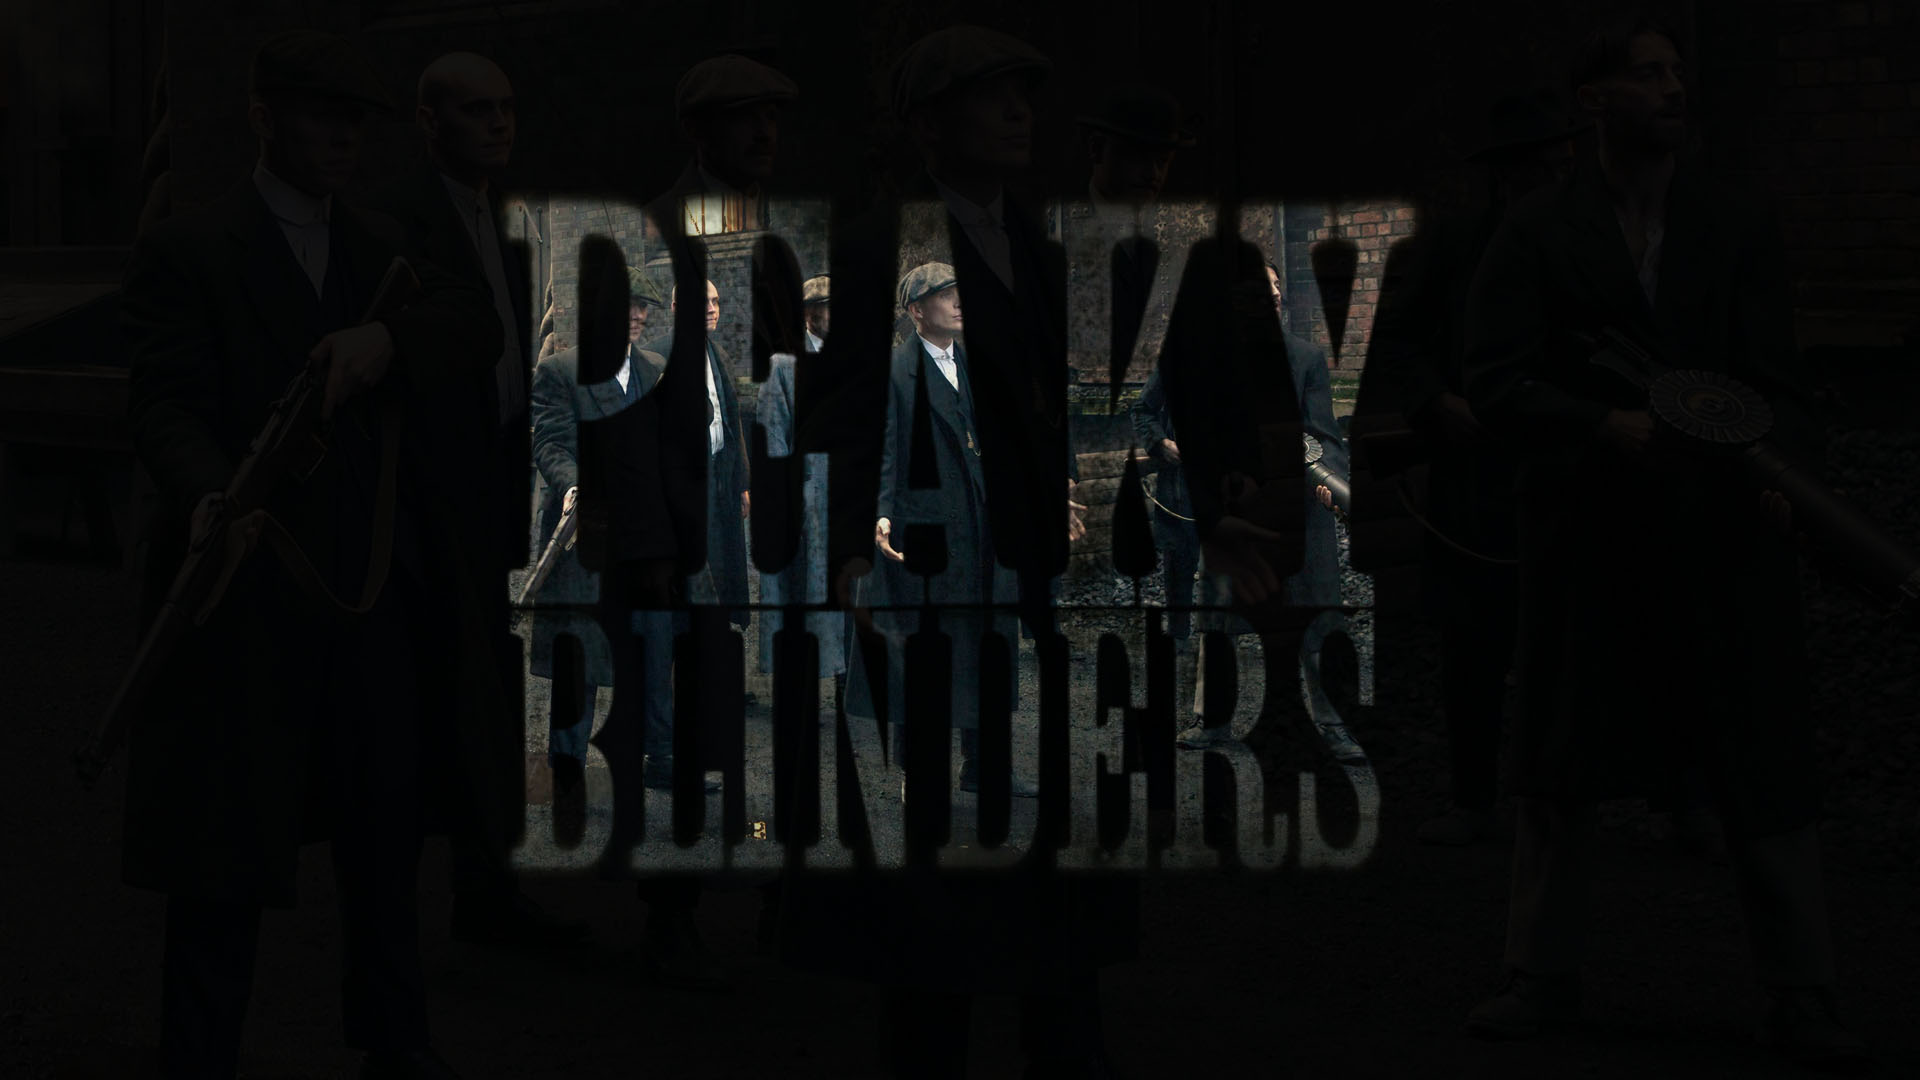 Peaky Blinders Wallpaper Iphone X Peaky Blinders Wallpapers 31 Wallpapers Adorable